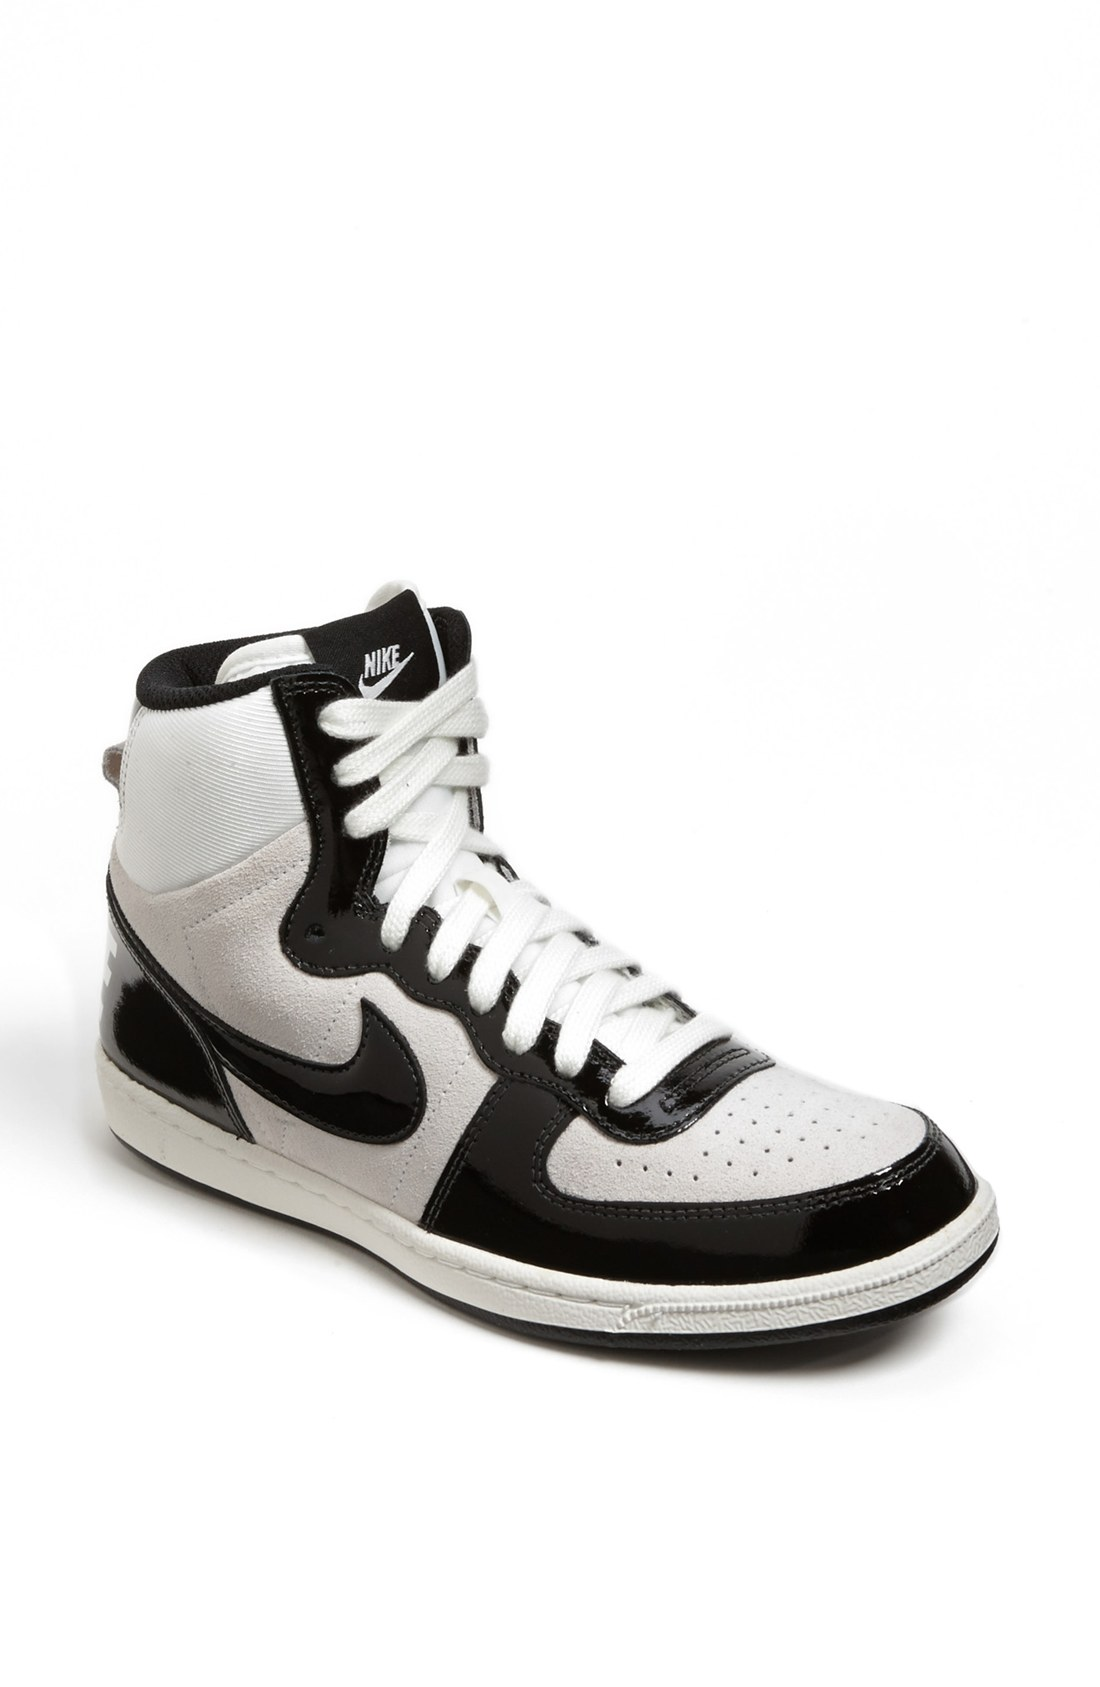 nike terminator lite high top sneaker in white white black lyst. Black Bedroom Furniture Sets. Home Design Ideas